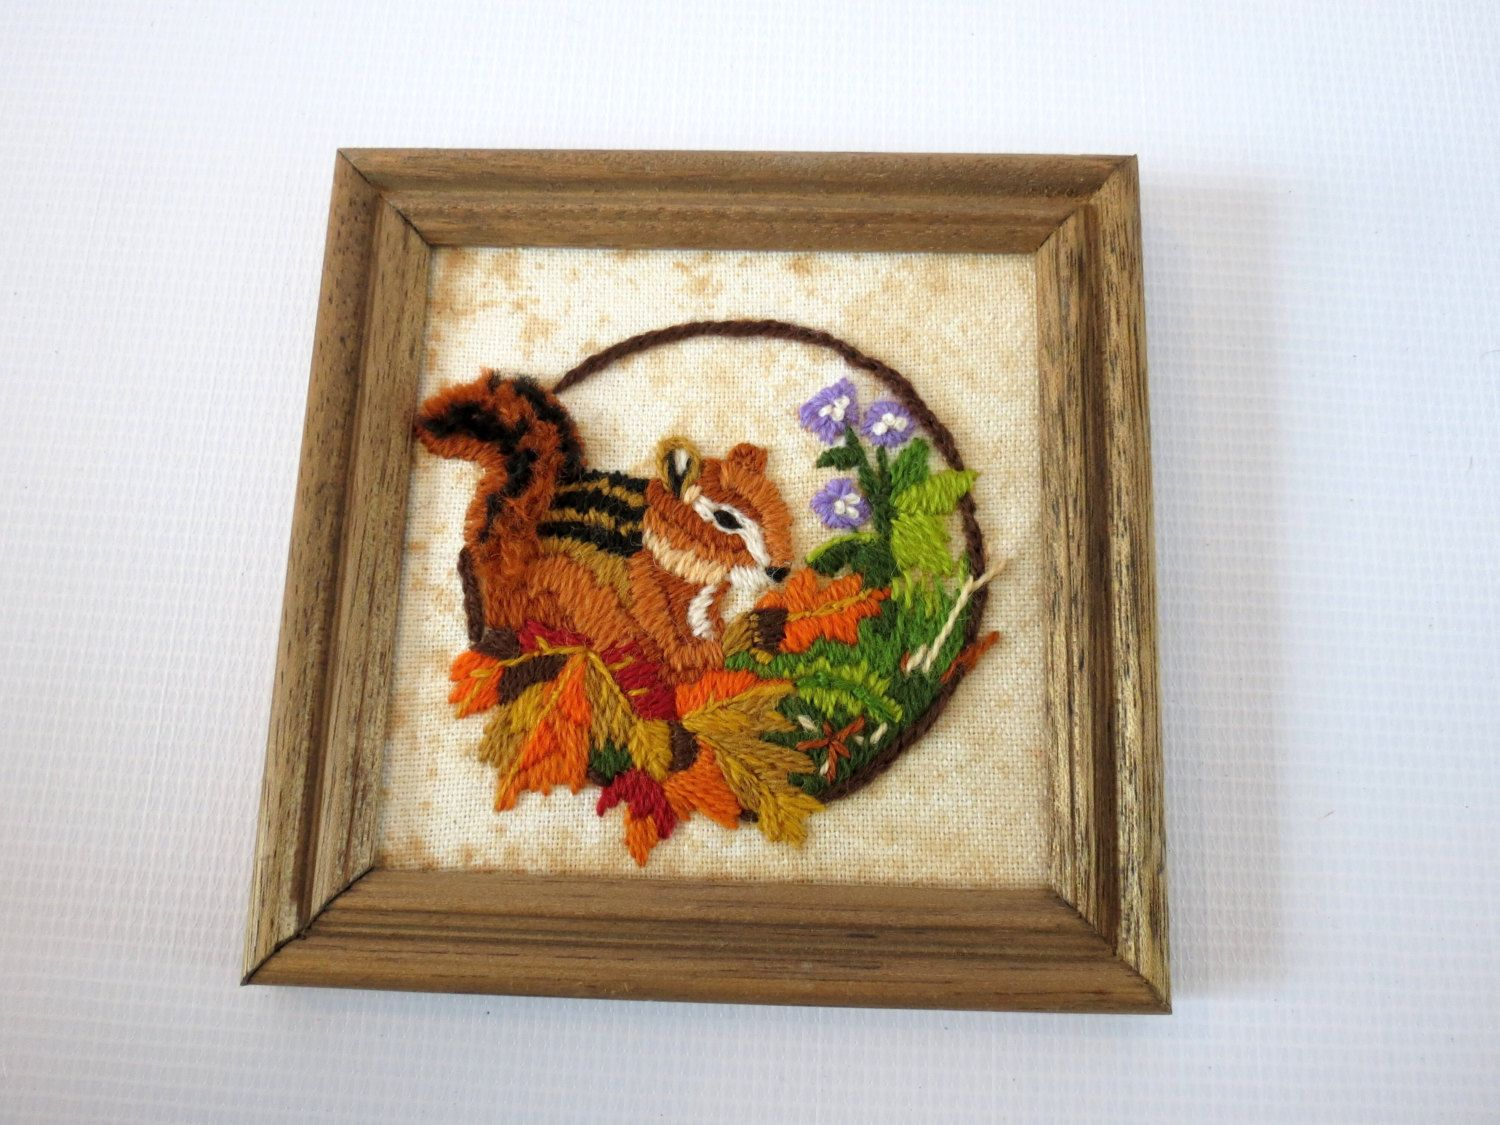 Vintage Crewel Picture Squirrel Wall Hanging Needlepoint Artwork 70s Decor 1970s Wall Hanging Art Crewel Art Woodland Animal by GoodLuxeVintage on Etsy